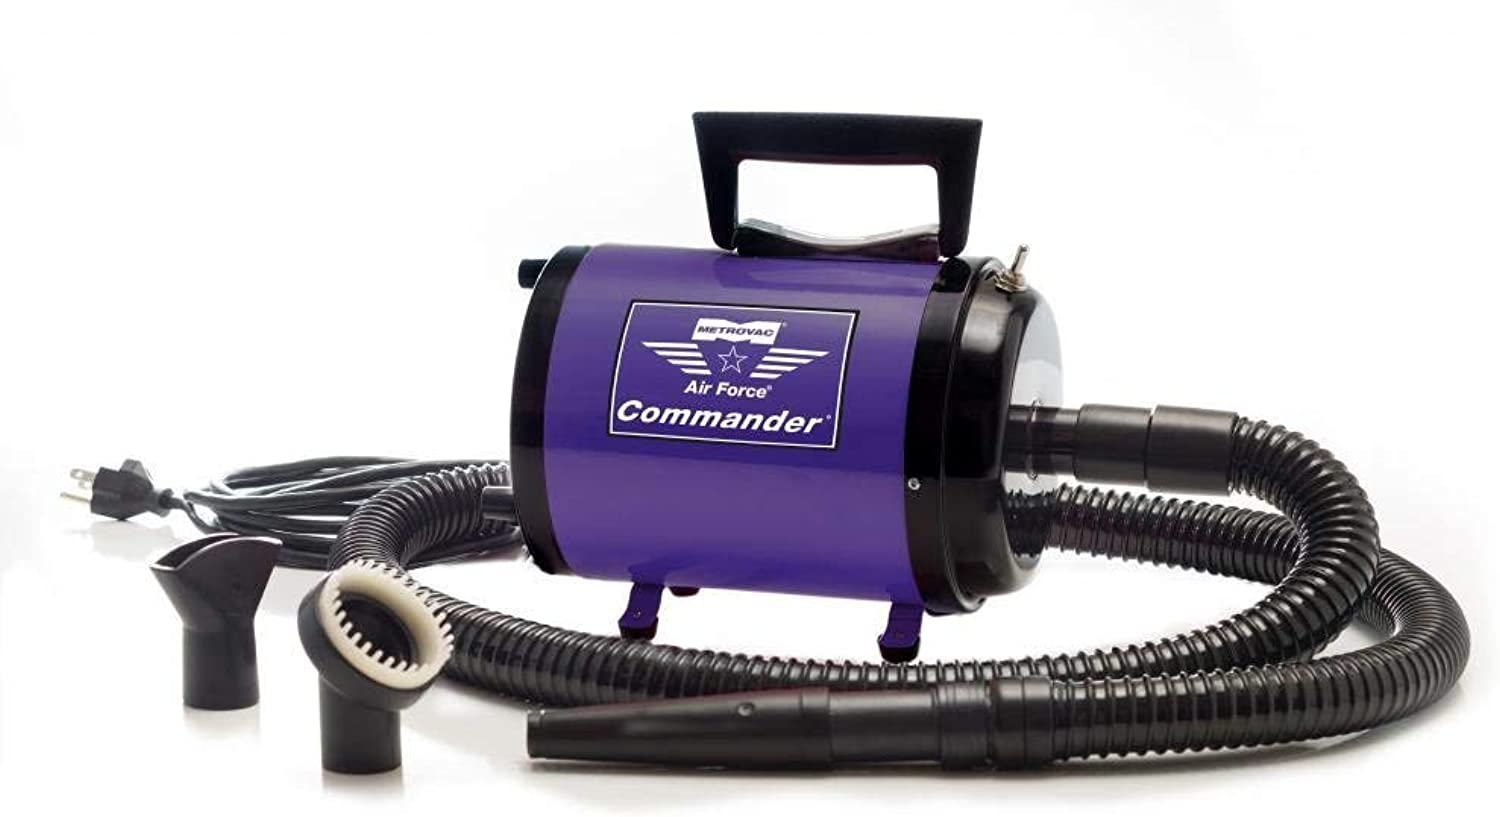 Dog Dryer Metrovac's Air Force Commander Professional Dog Grooming Pet Dryer – Portable Hair Dryer, 2 Speed 1.70HP Motor – Ideal for Heavy Coat Dogs – 5 Unique colors (Purple)